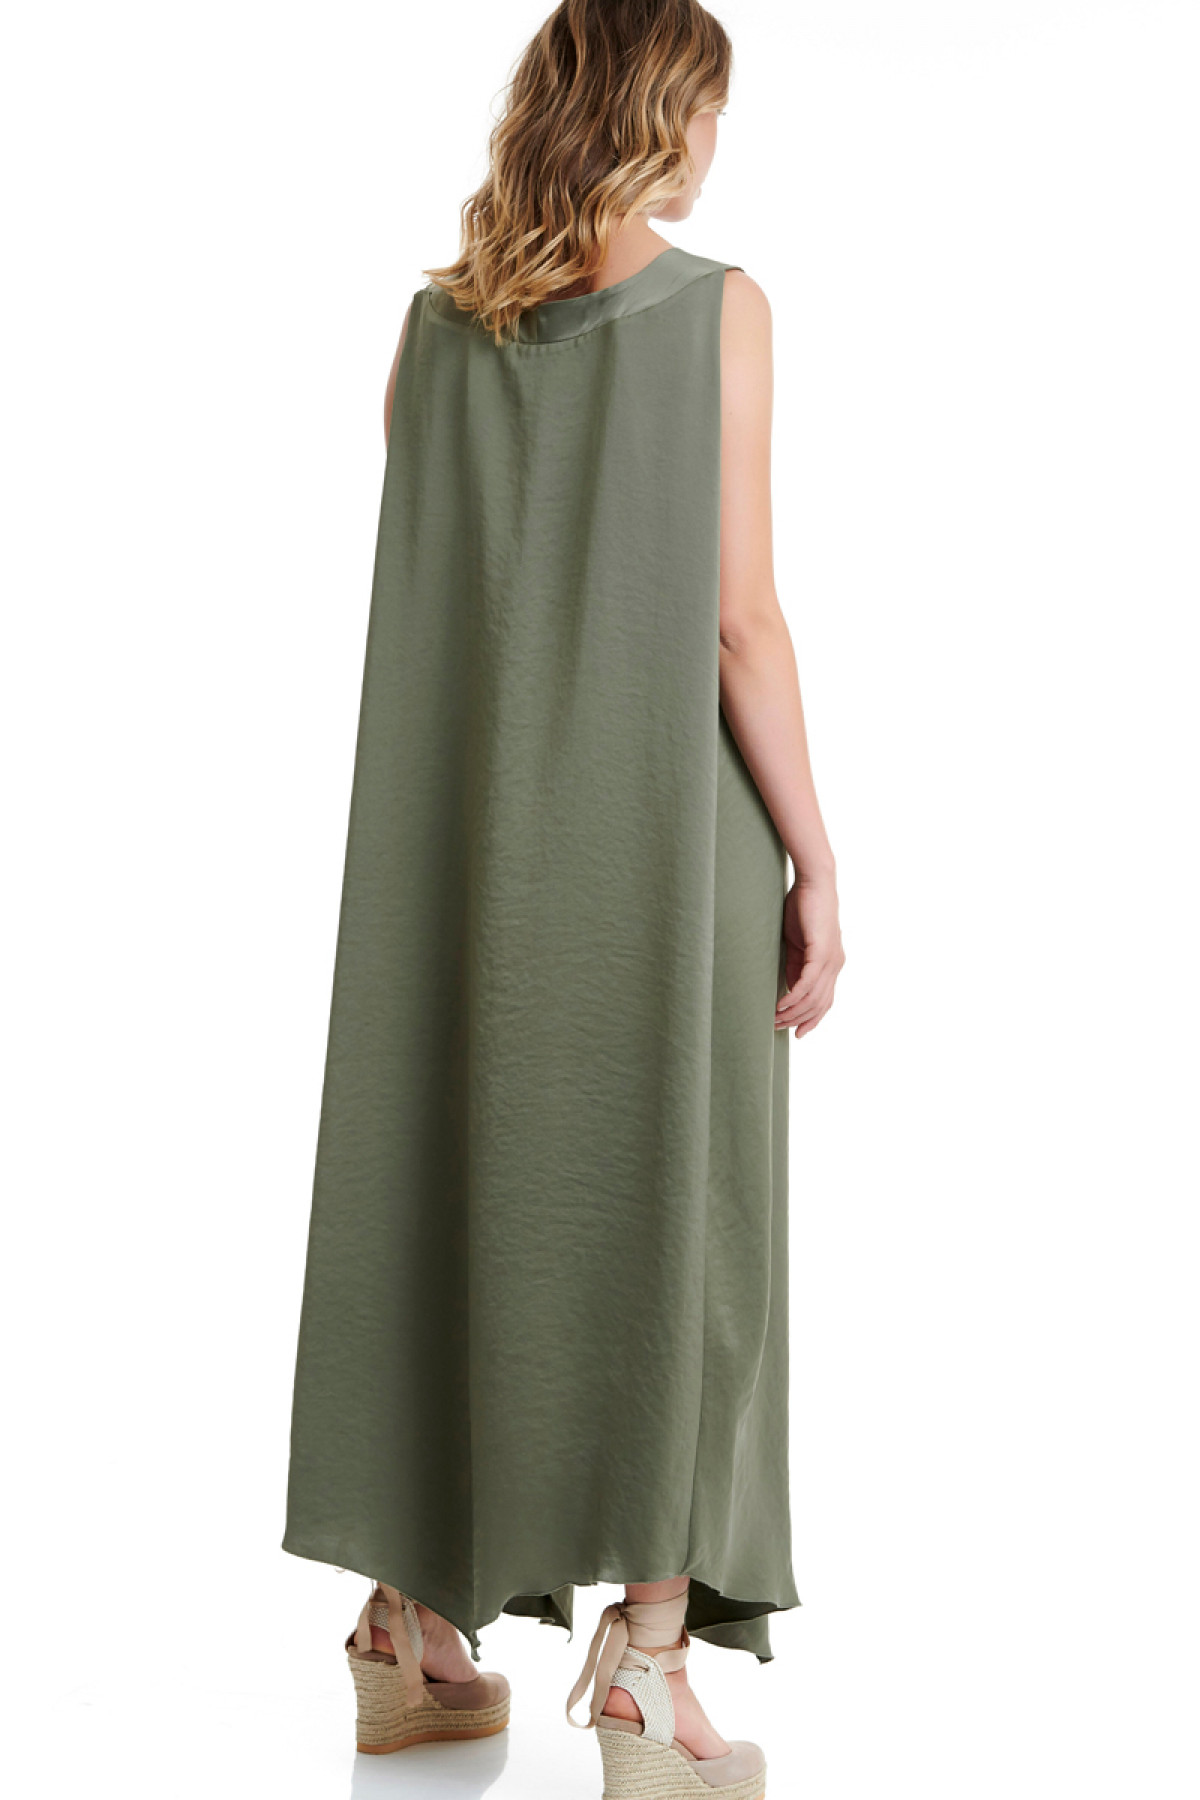 LONG OLIVE GREEN OVERSIZED DRESS